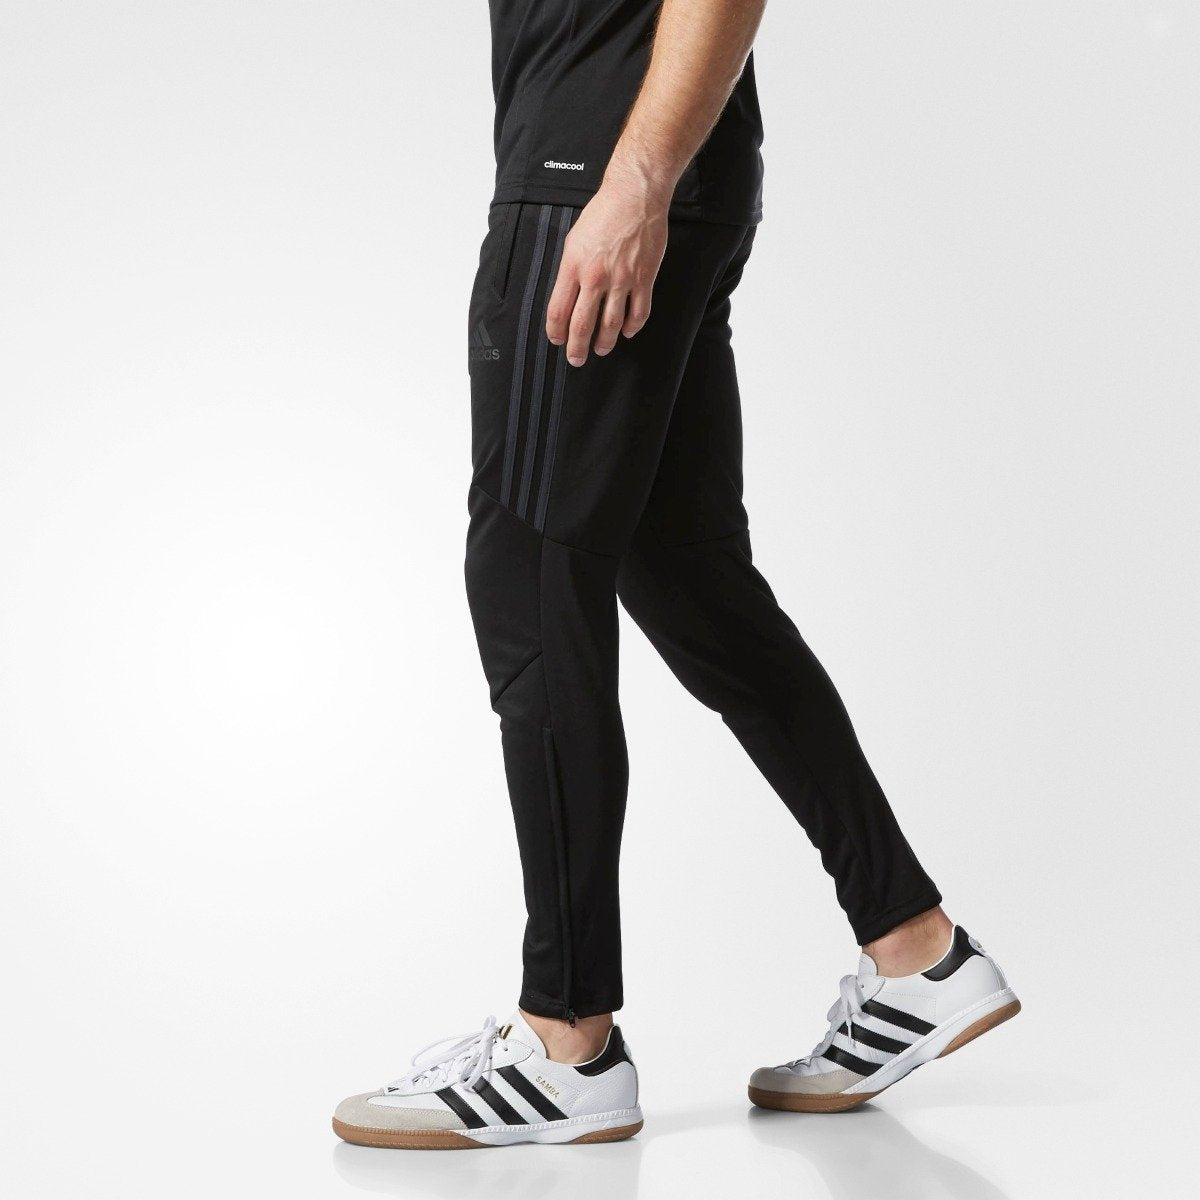 Men's Adidas Soccer Tiro 17 Training Pants Black | Chicago